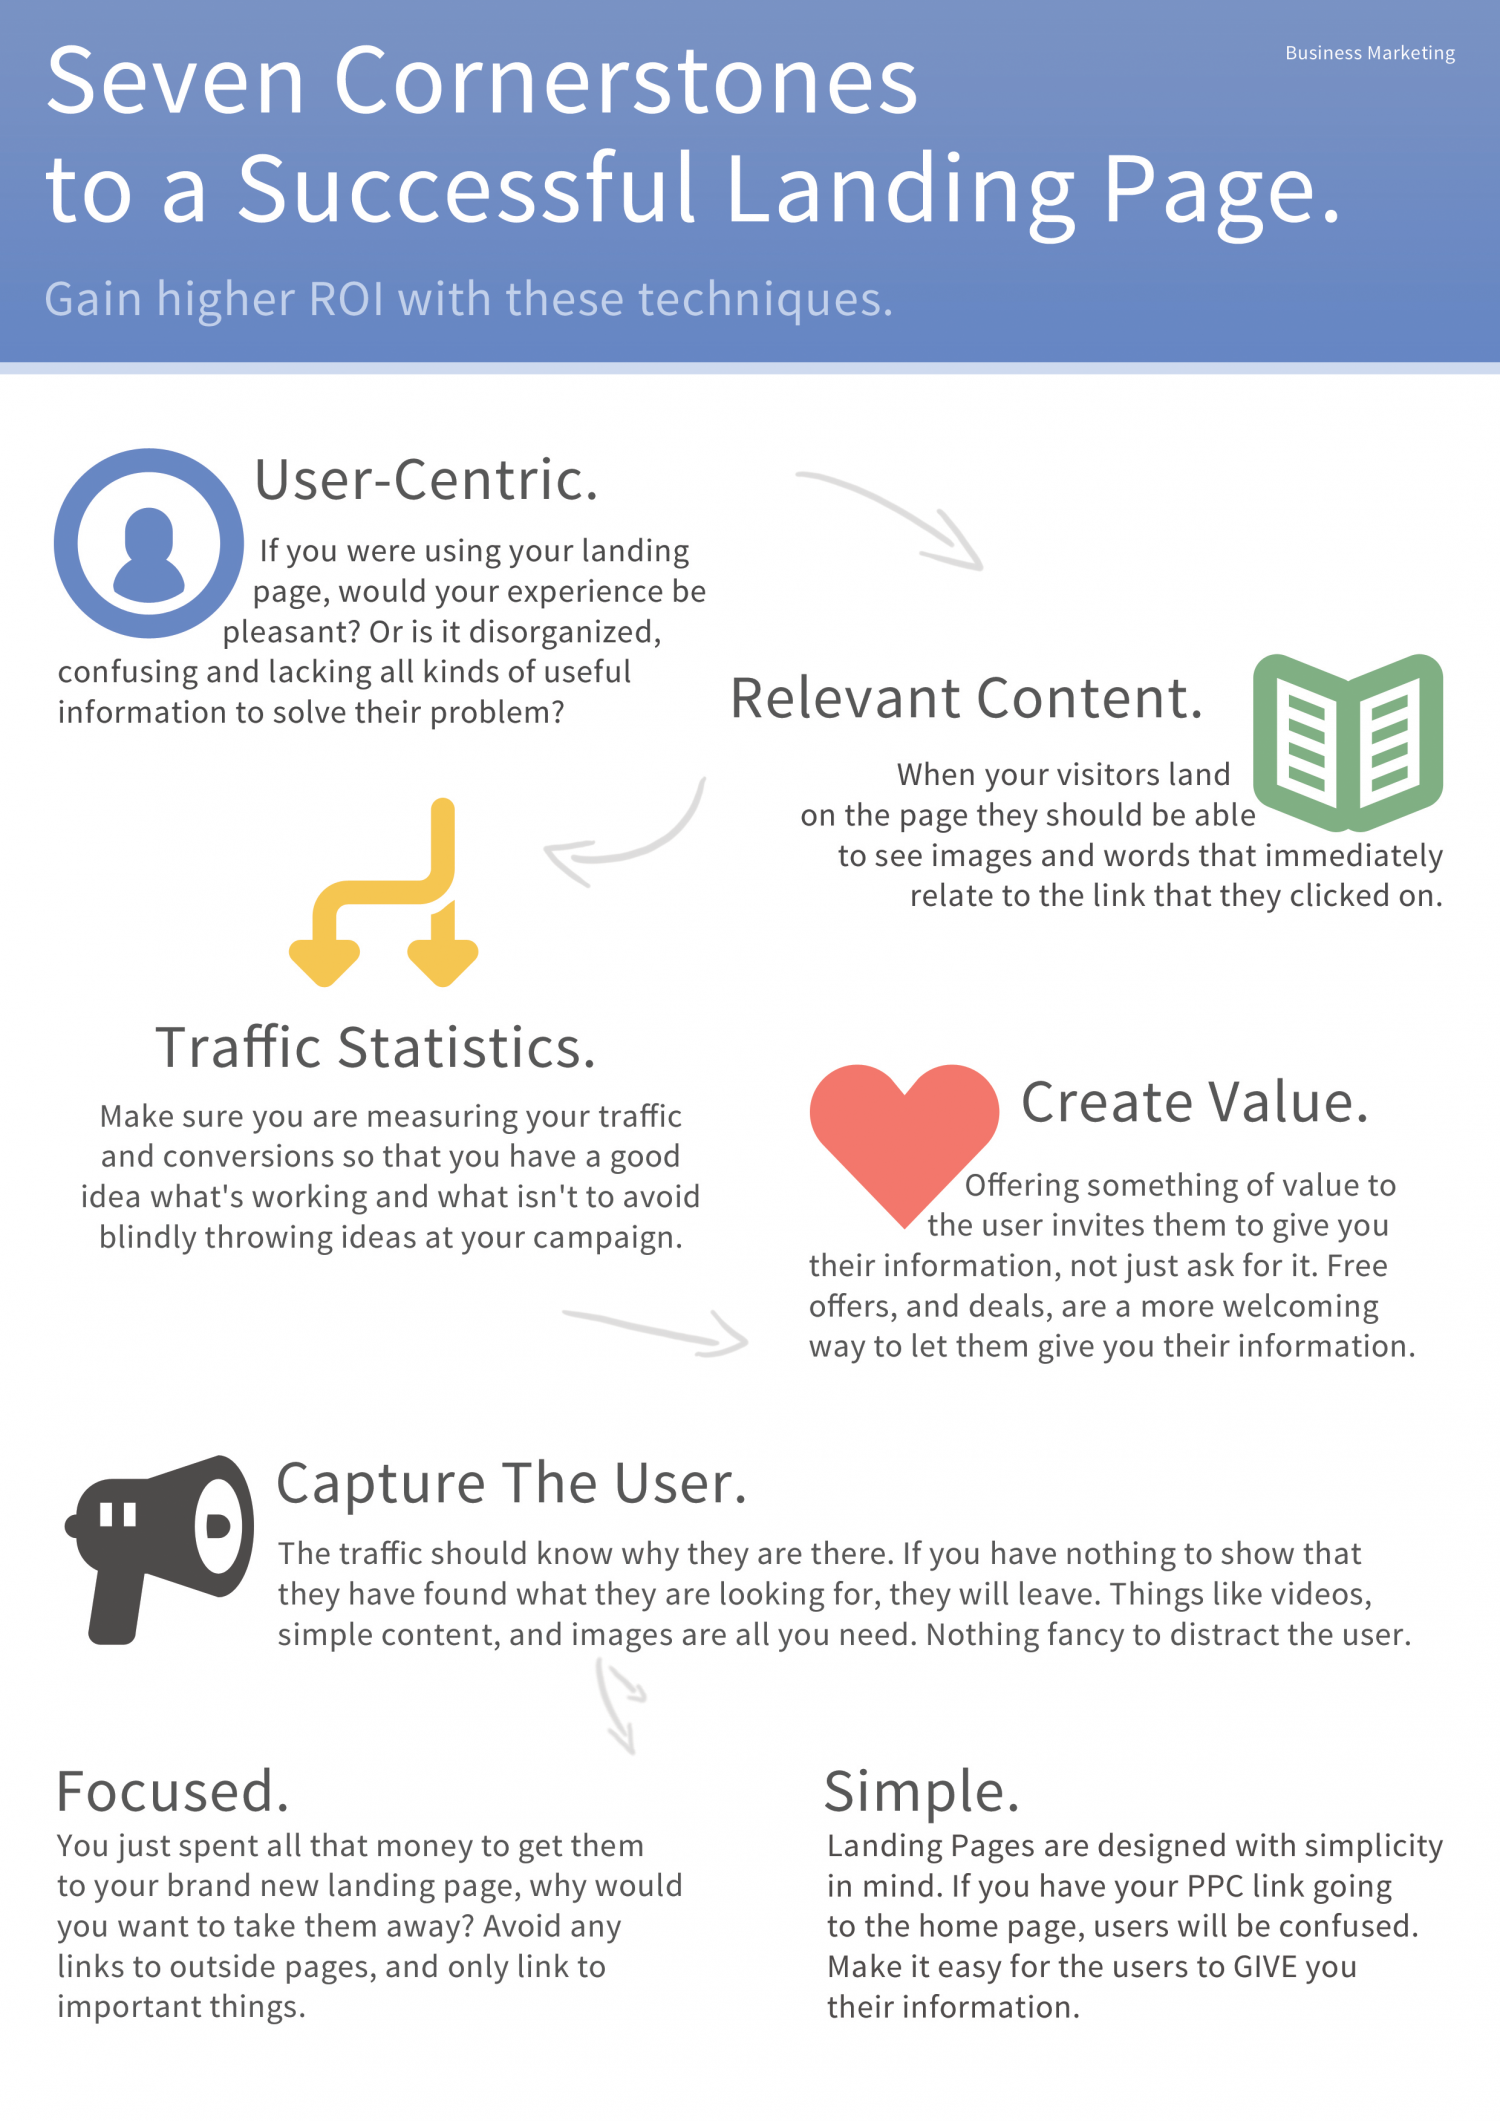 7 Cornerstones to a successful landing page Infographic